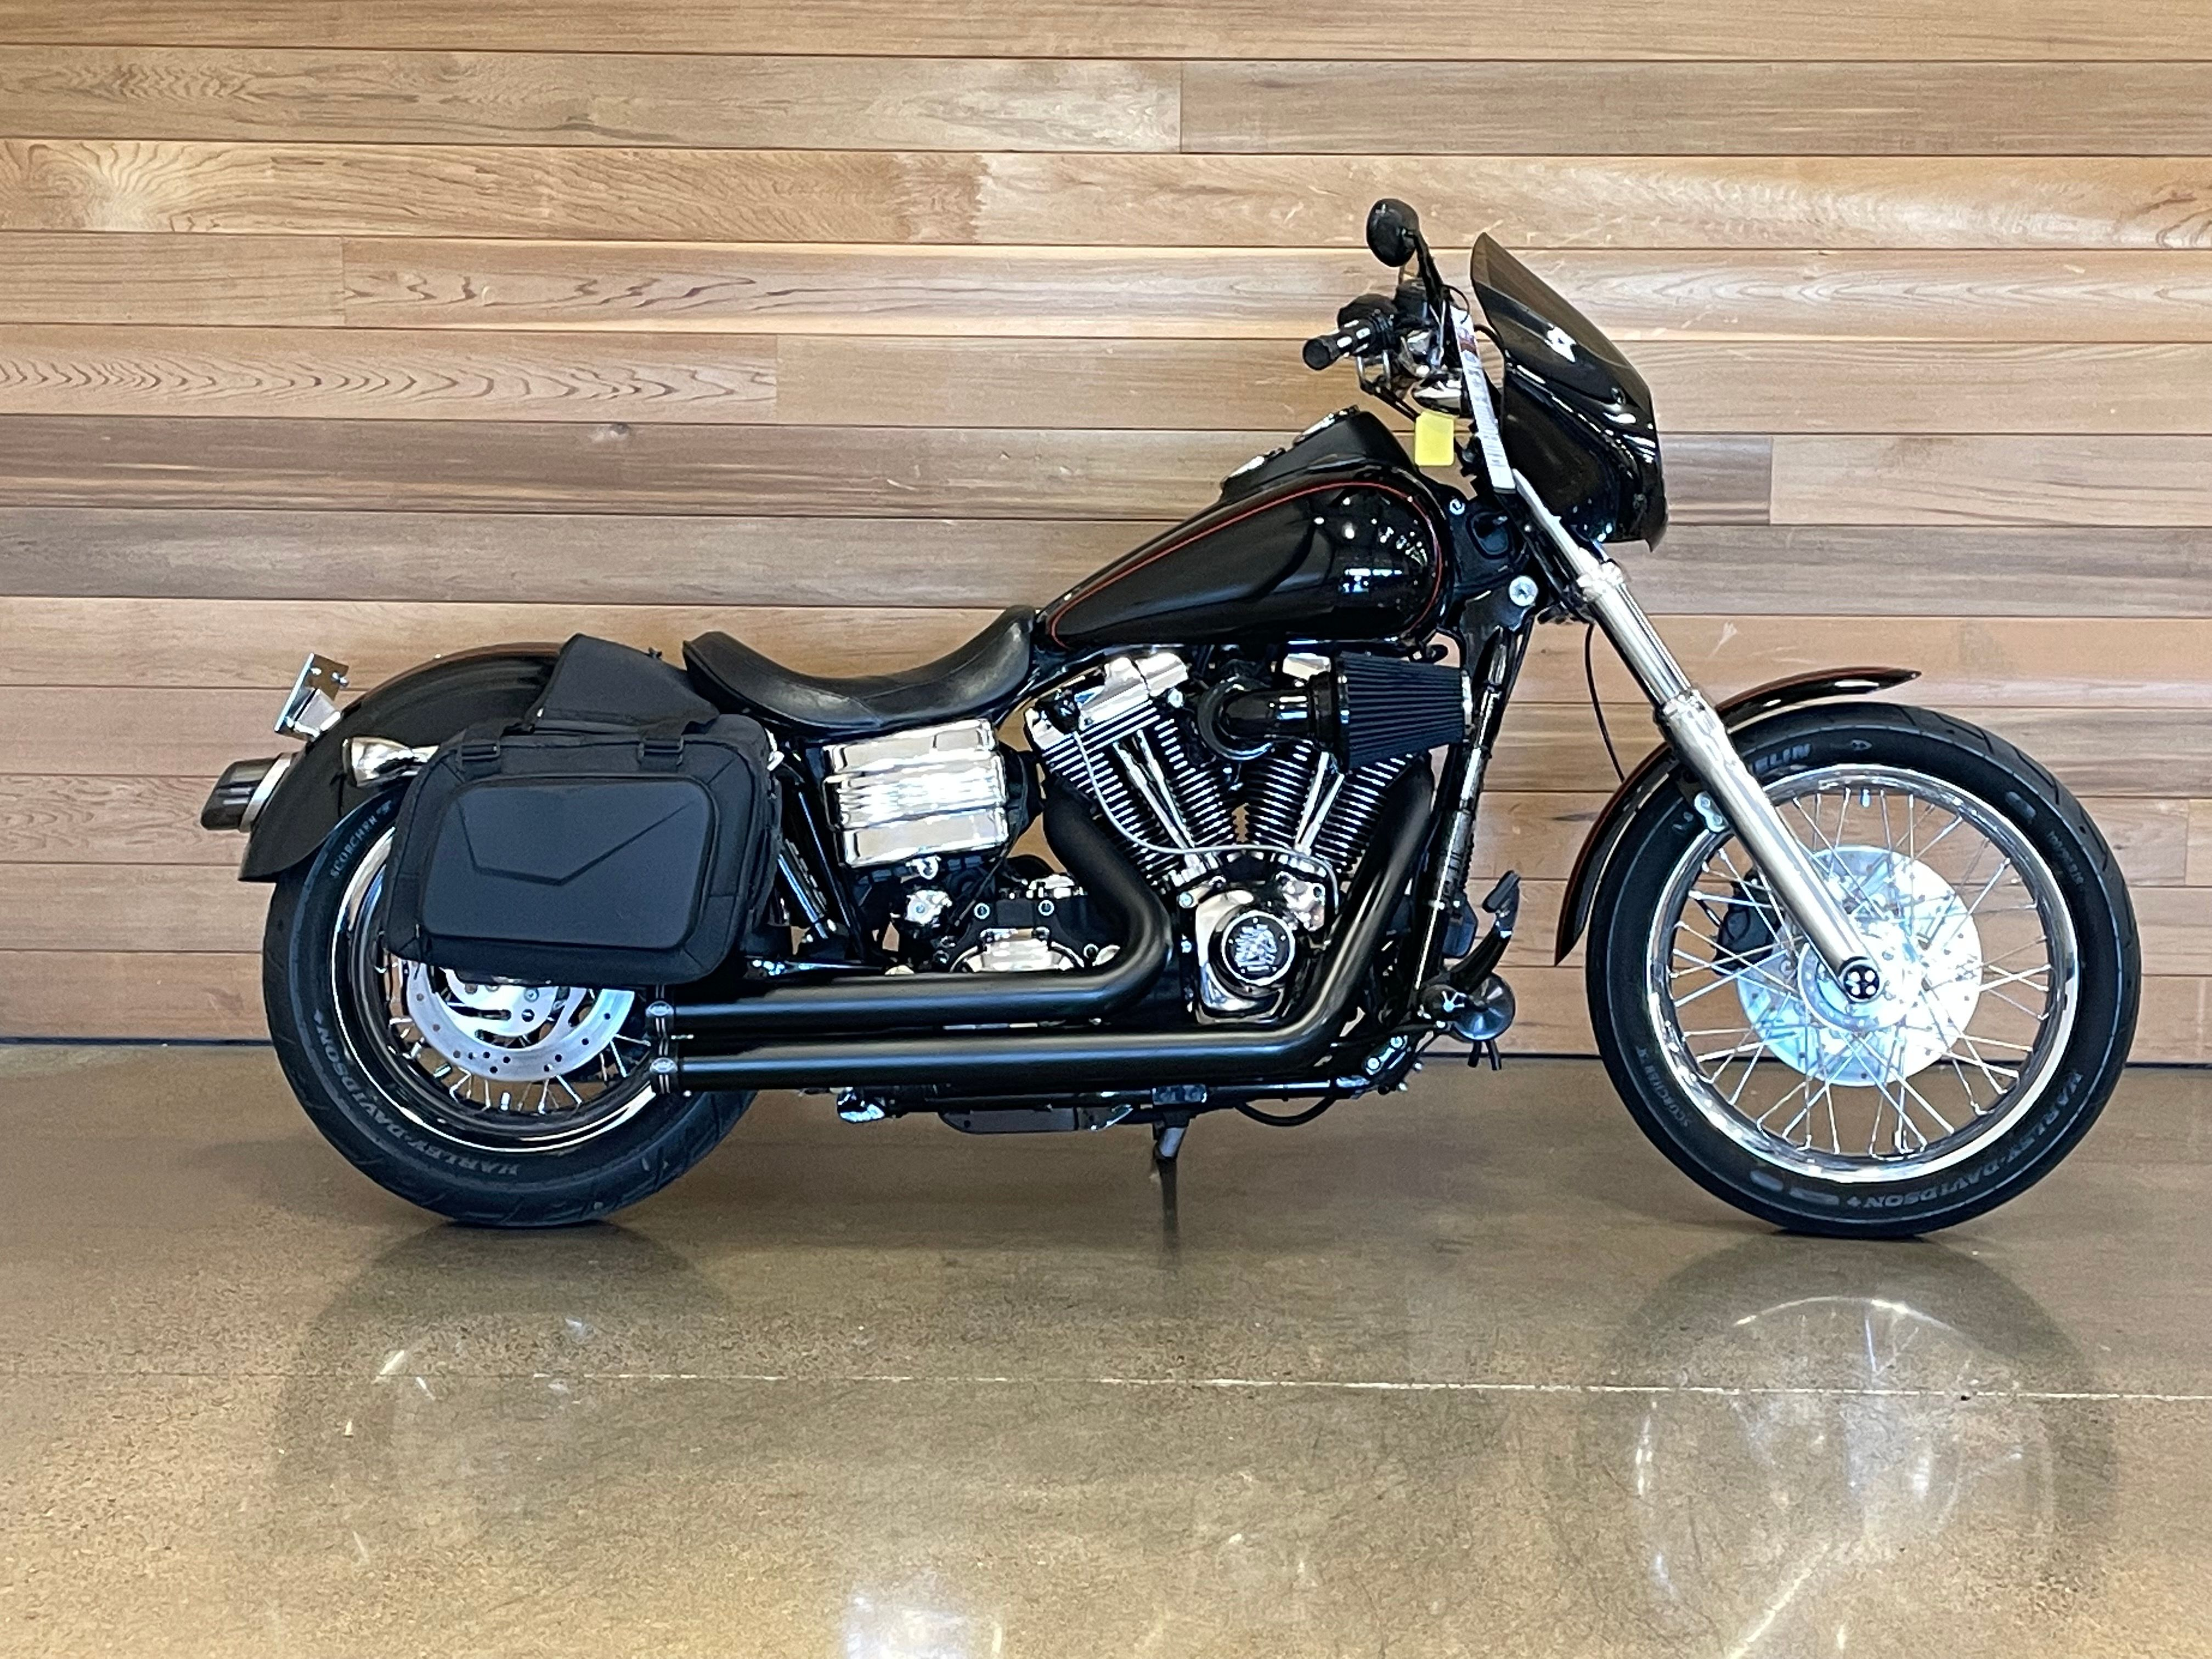 Pre-Owned 2008 Harley-Davidson Low Rider FXDL